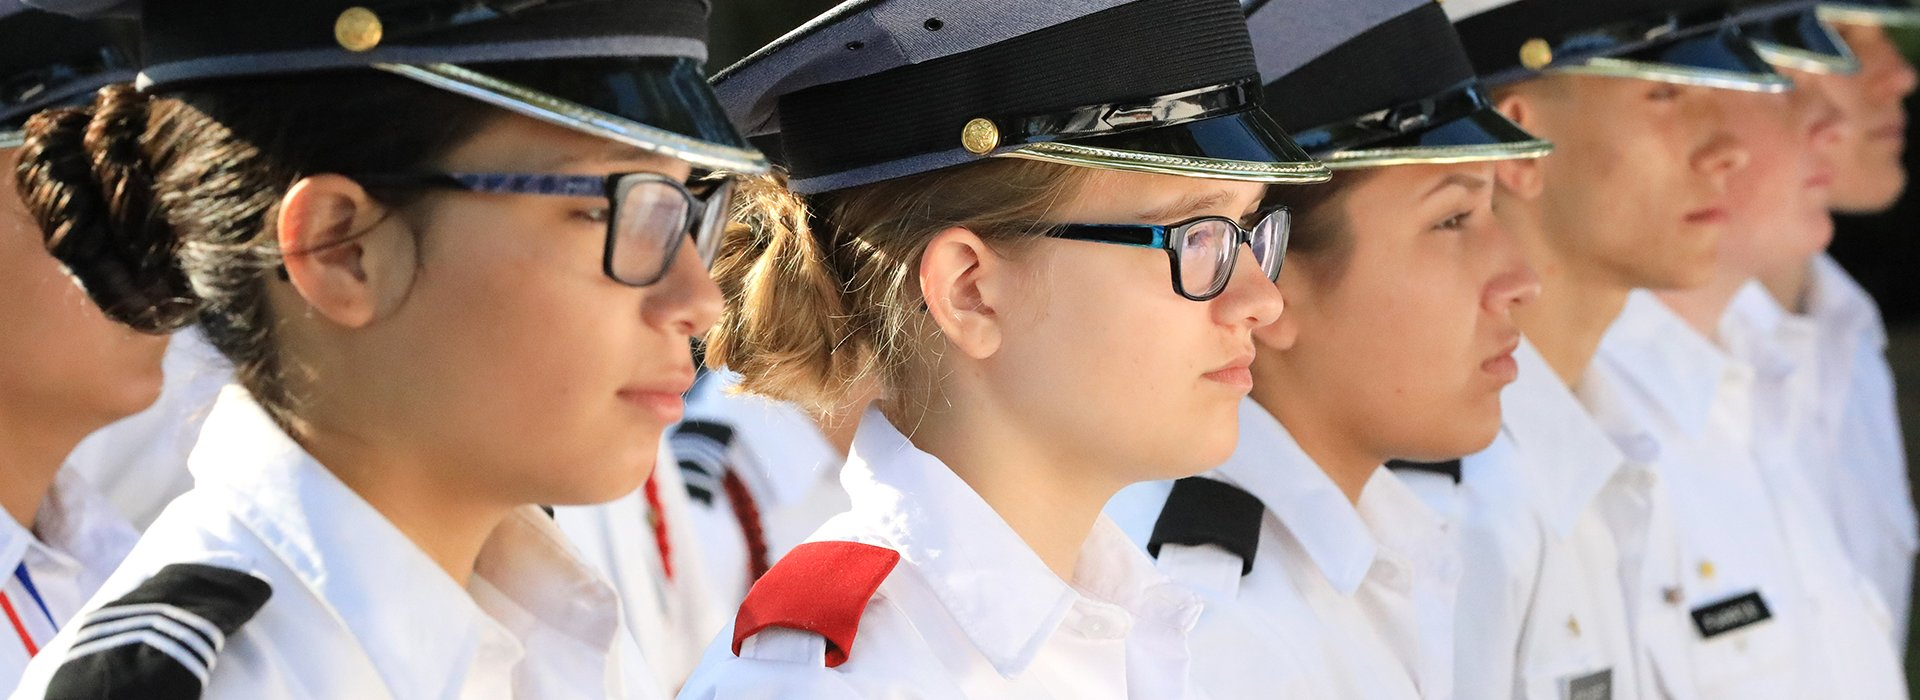 Military Academy Students